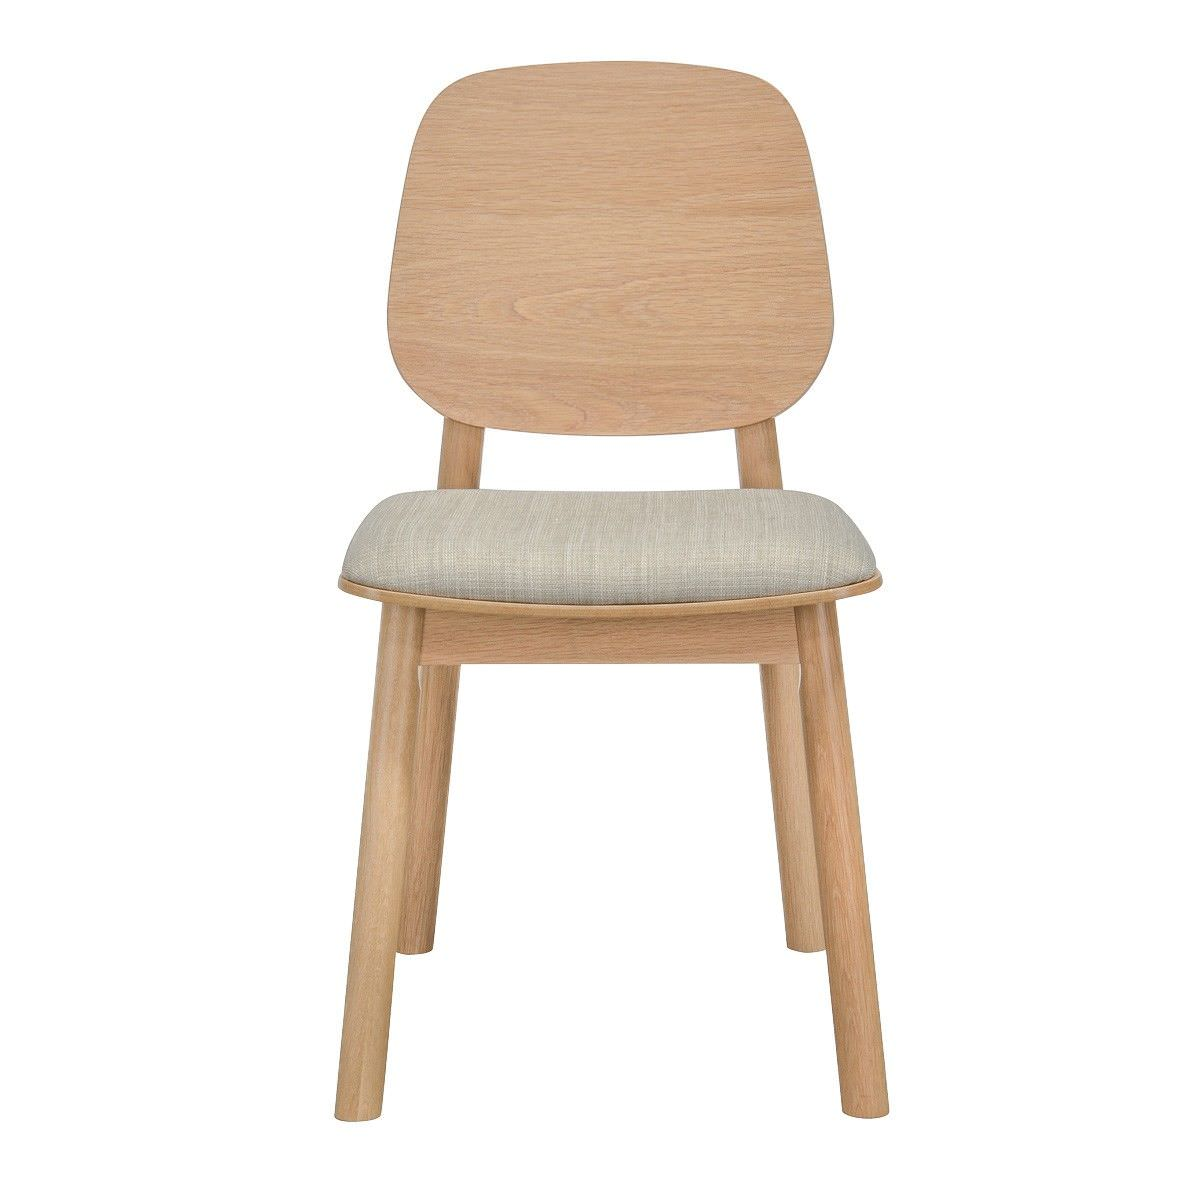 Bente White Oak Timber Dining Chair with Fabric Seat, Panel Back